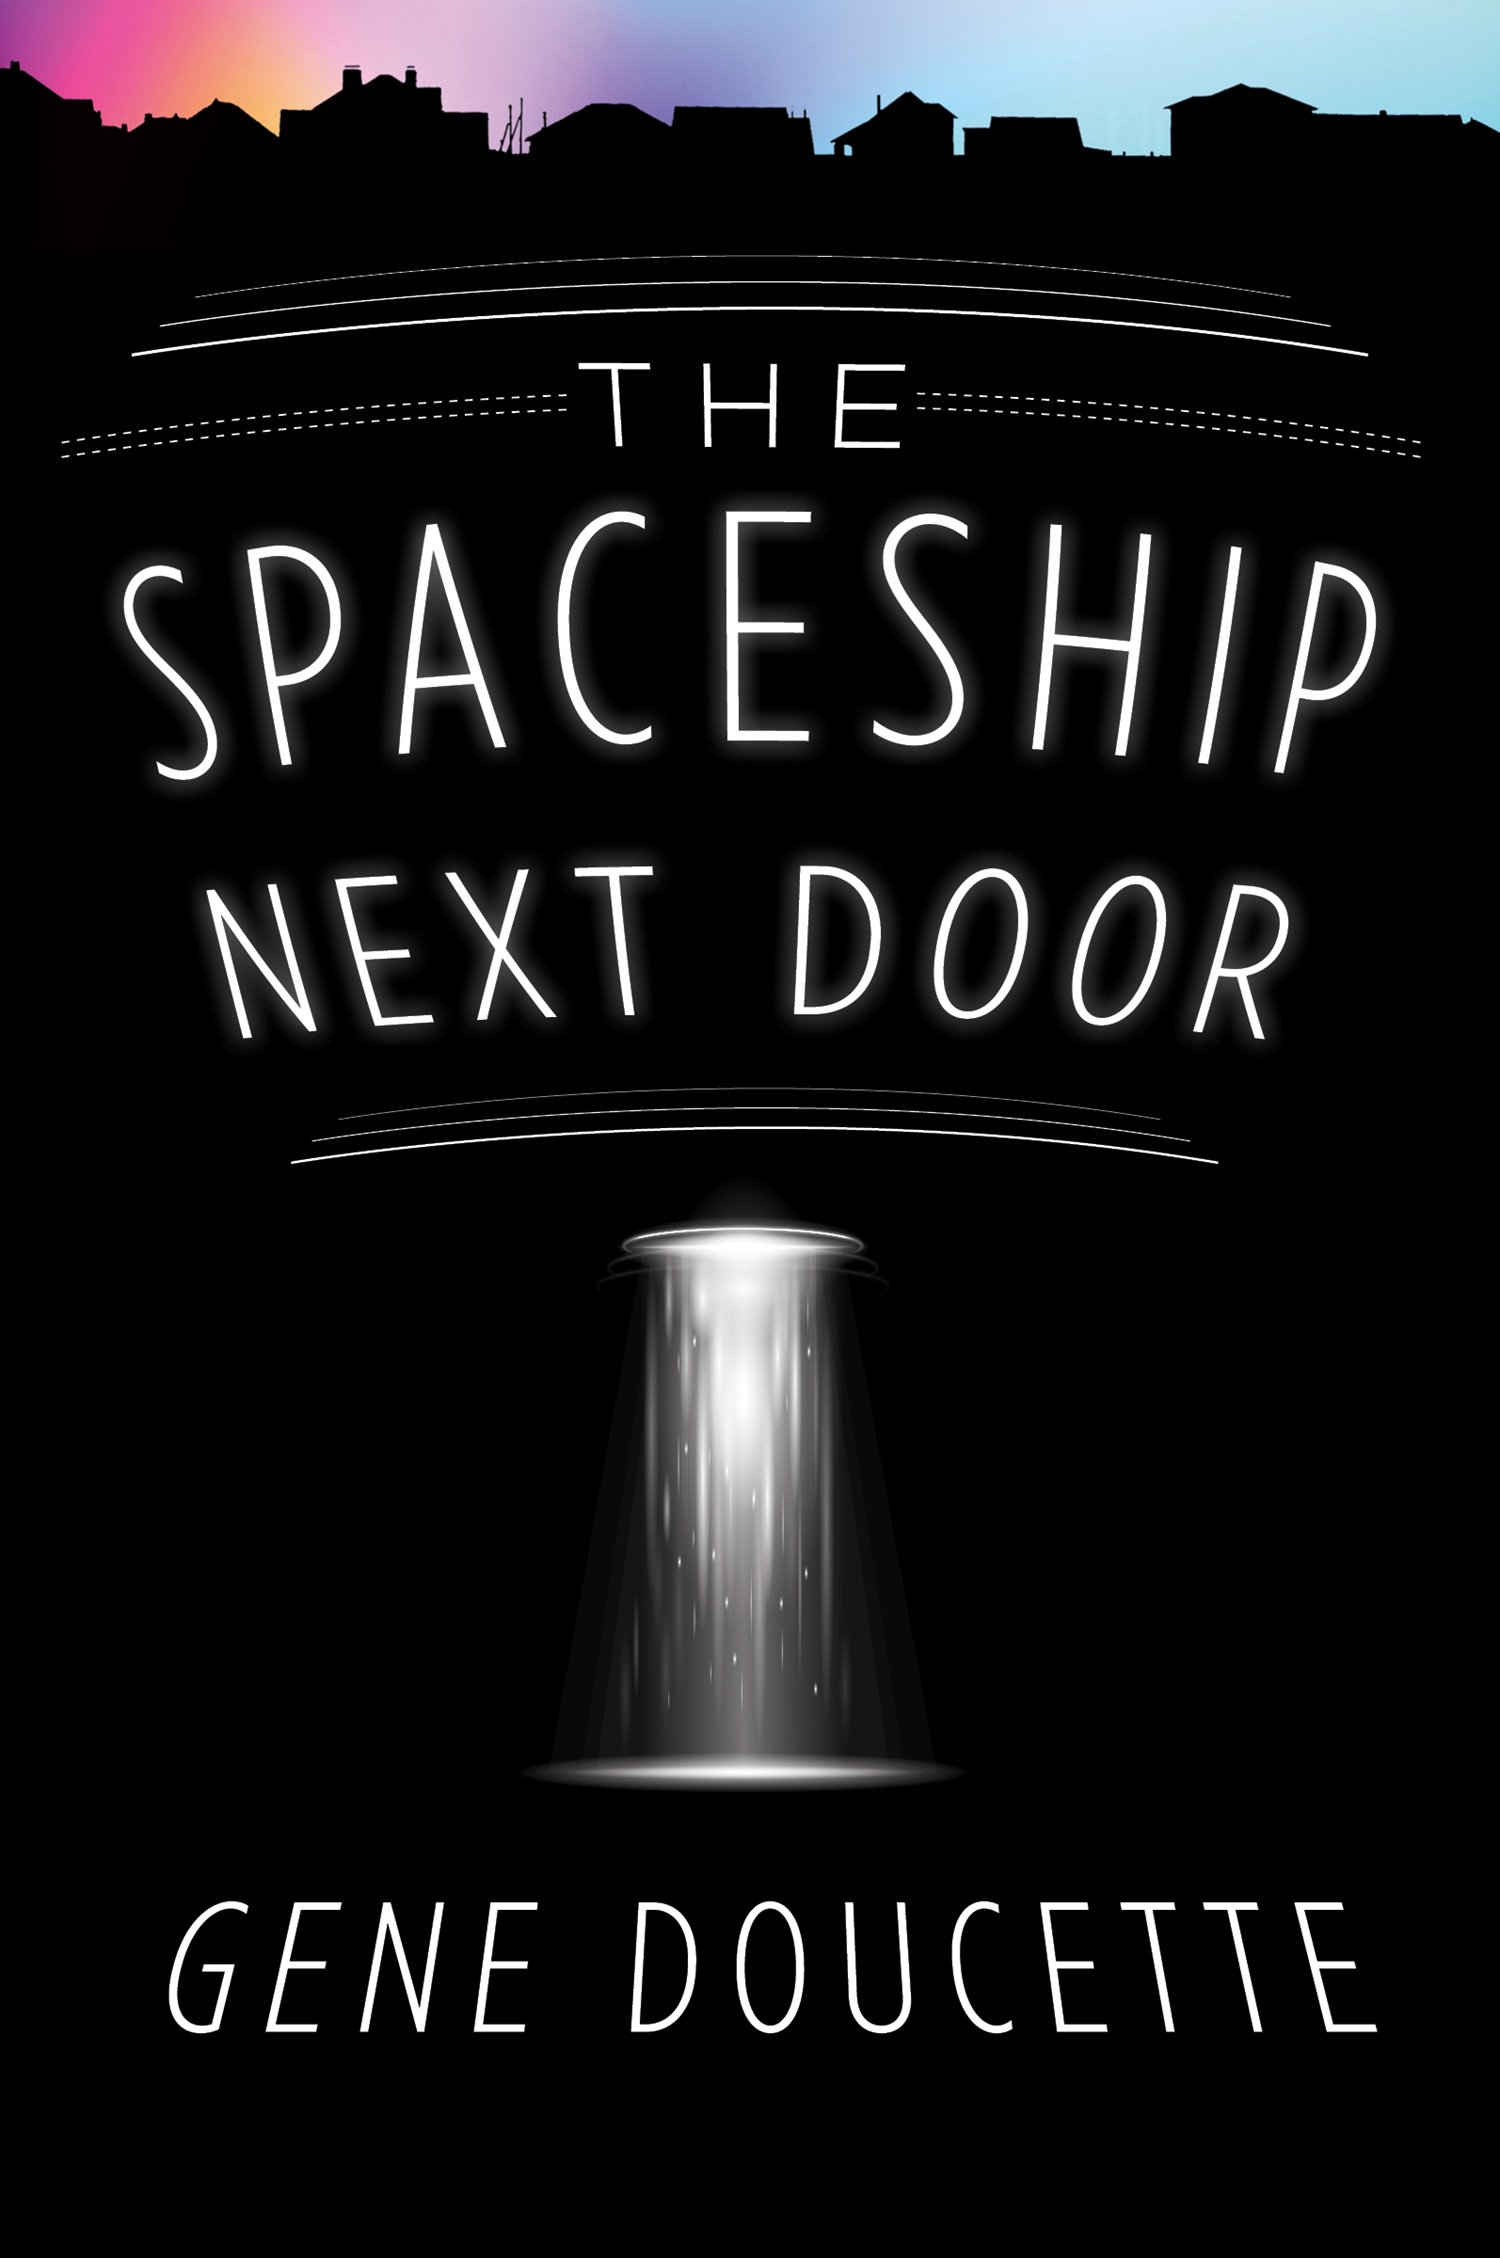 Amazon.com: The Spaceship Next Door (9781328567468): Doucette, Gene: Books